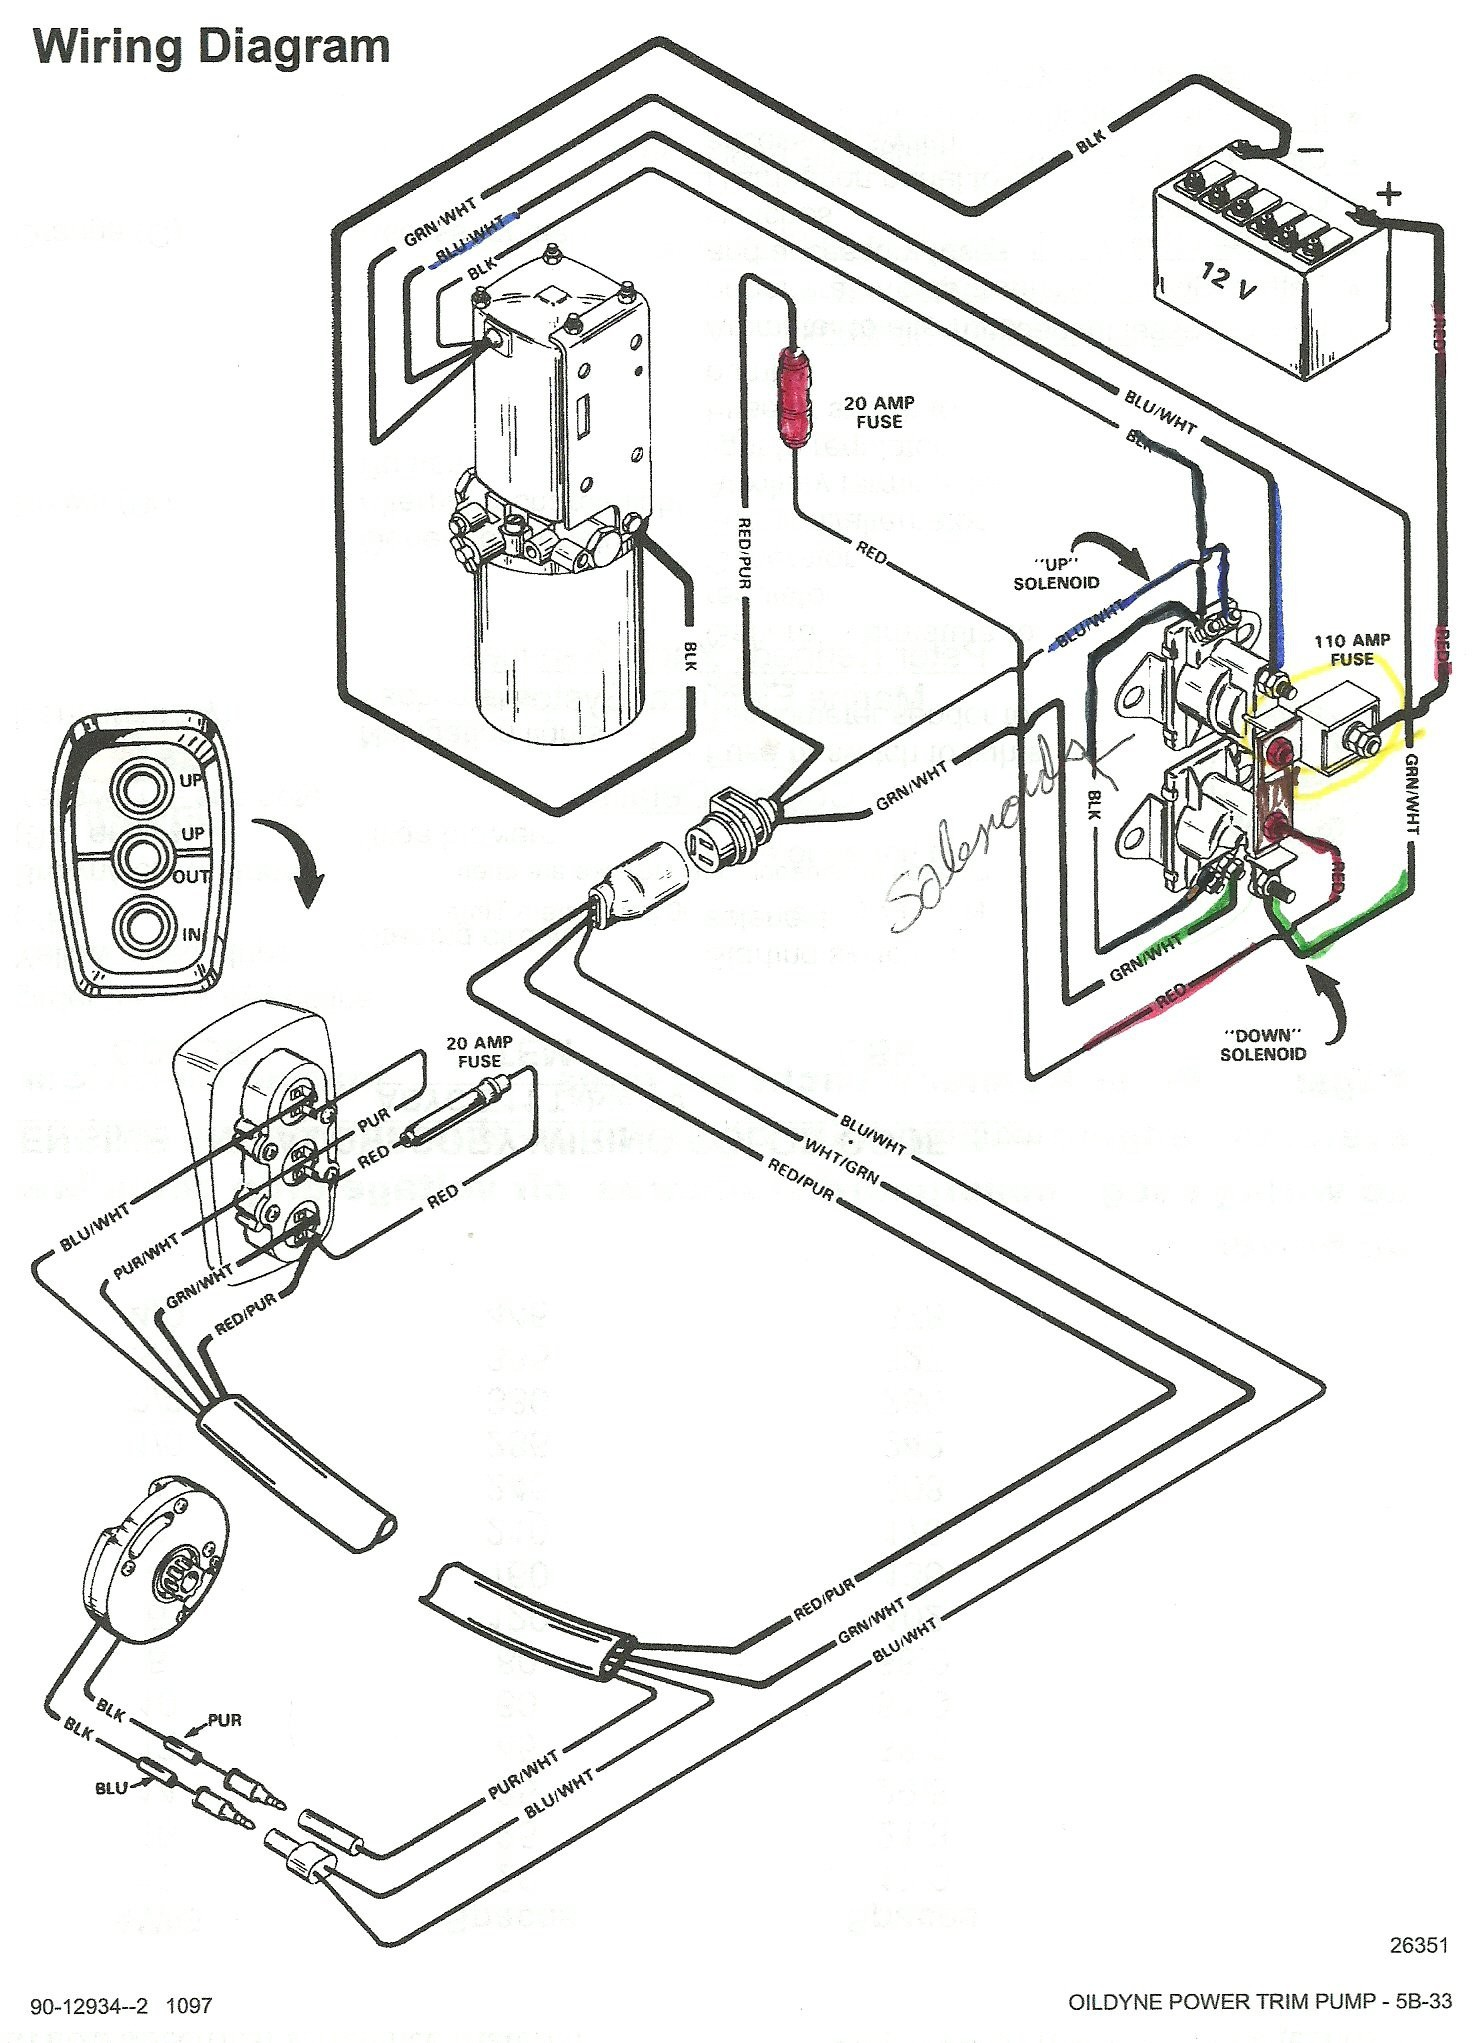 diagram of mercury 85 hp 1987 parts trim tilt lift systems andmercury power tilt wiring diagram all wiring diagram diagram of mercury 85 hp 1987 parts trim tilt lift systems and